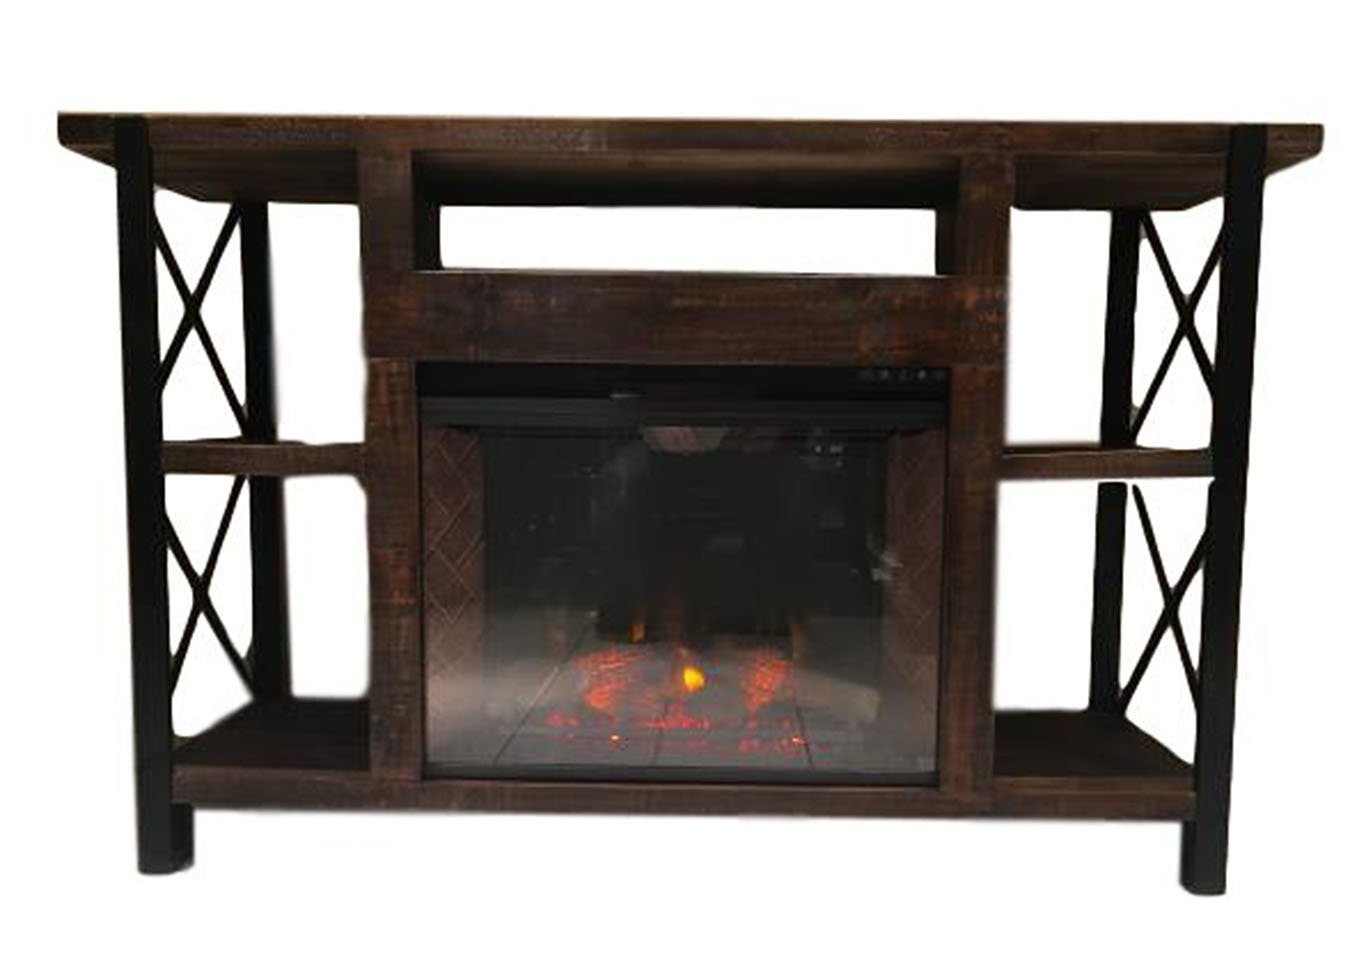 JON X IRON FIREPLACE STAND,VINTAGE FURNITURE LLC